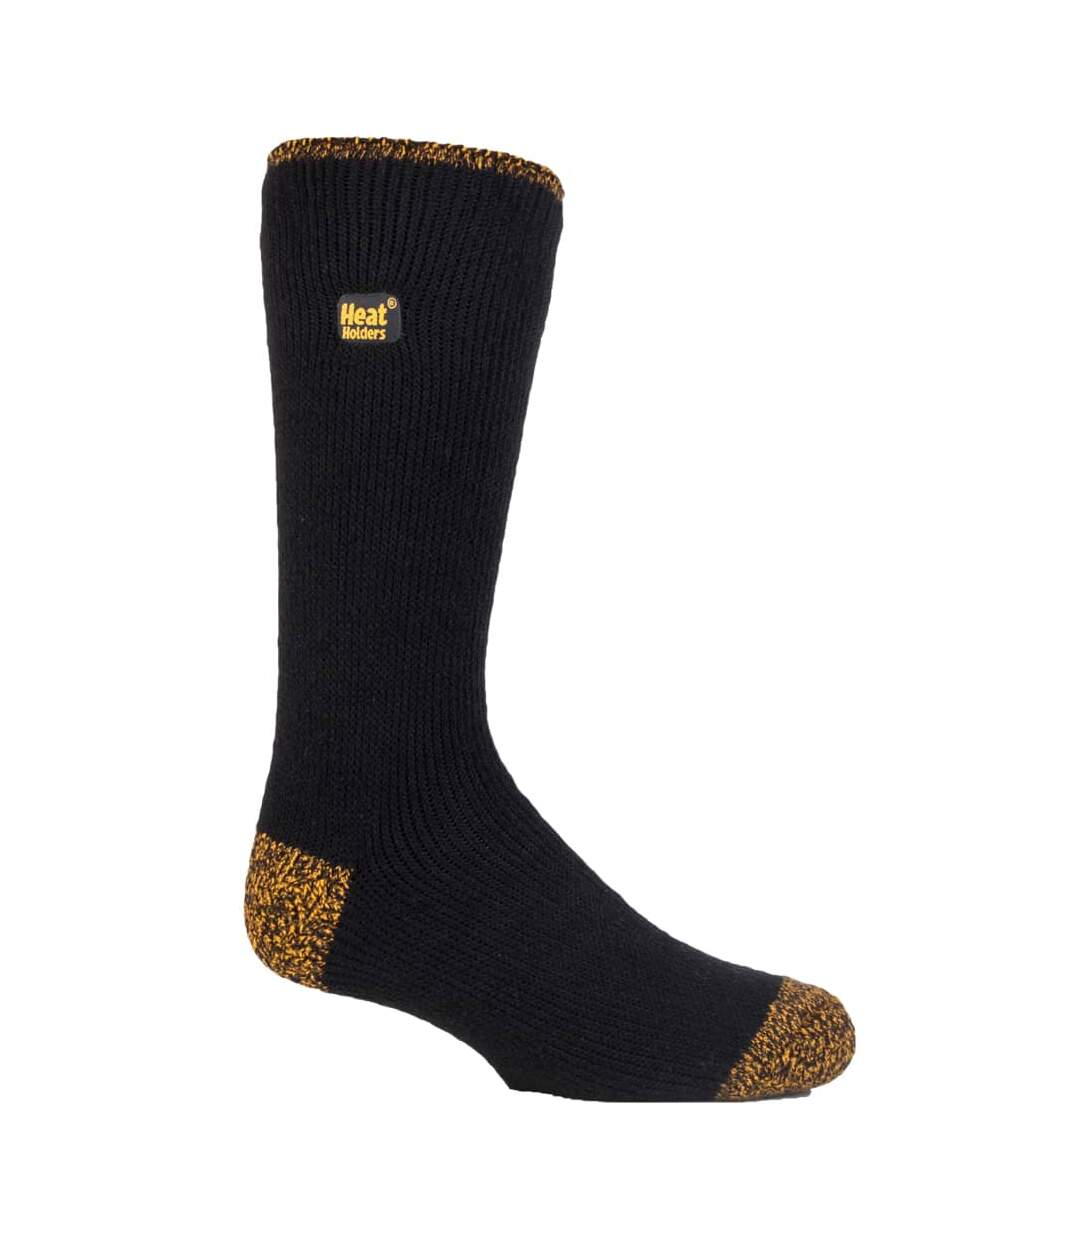 Mens Work Socks with Reinforced Heel and Toe